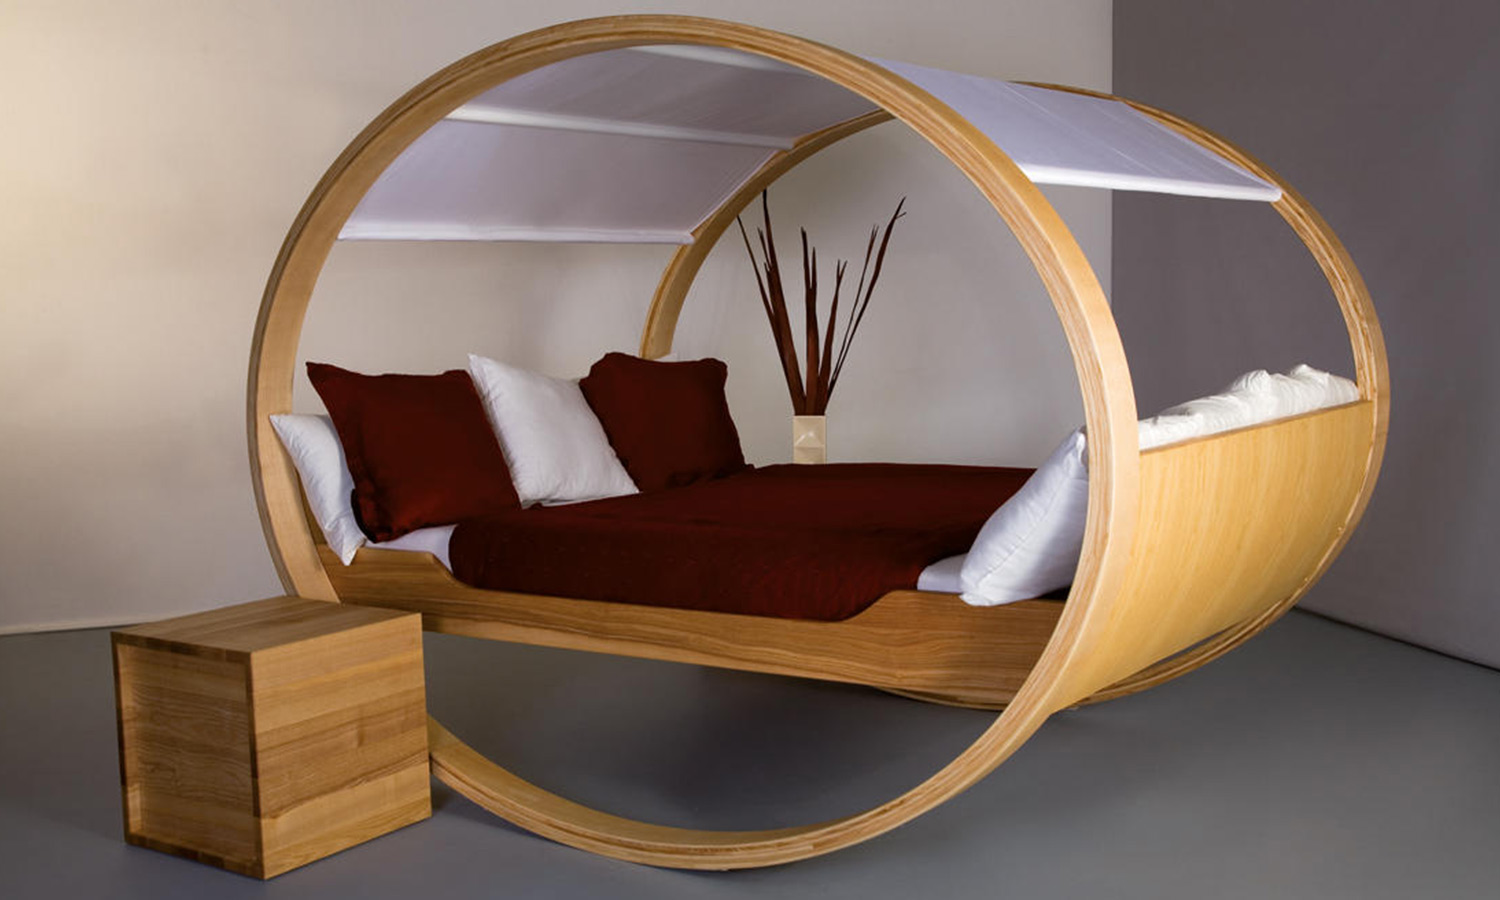 A bed with a vertically-round frame meant for rocking back and forth.